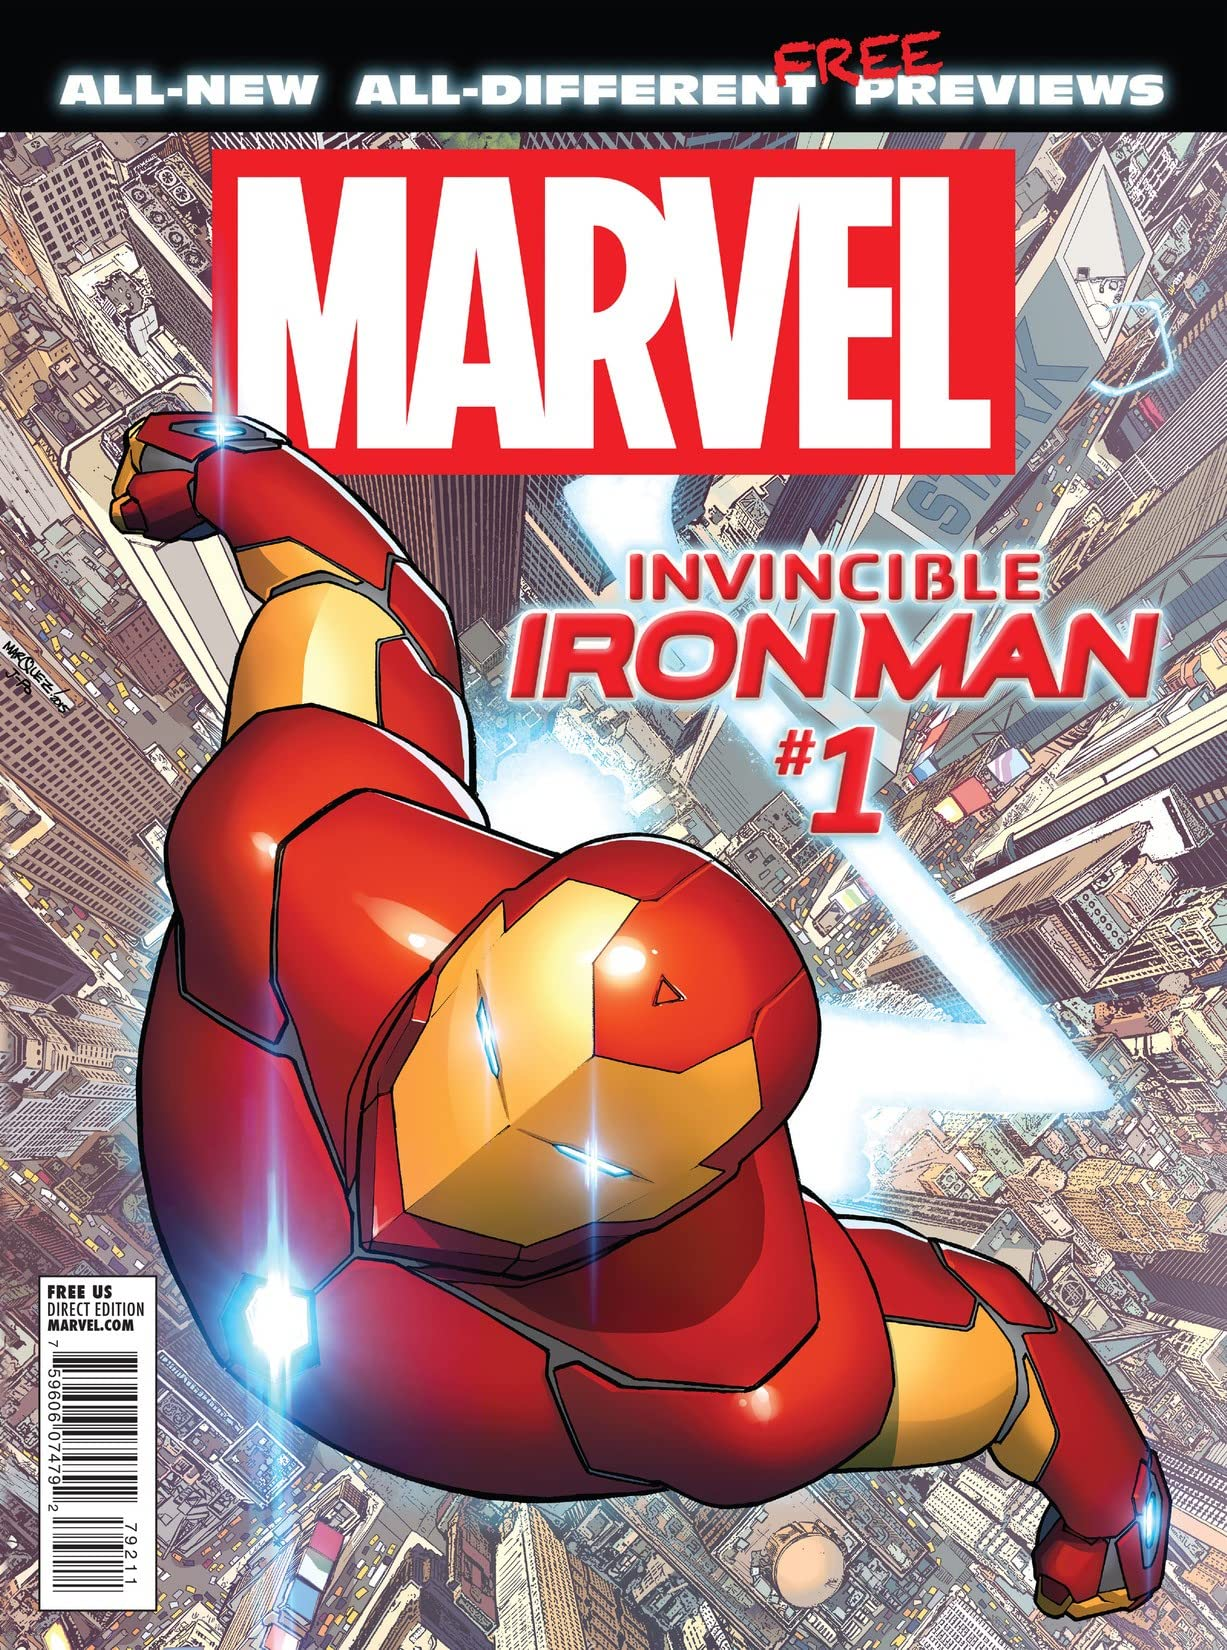 All-New, All-Different Marvel Previews #1